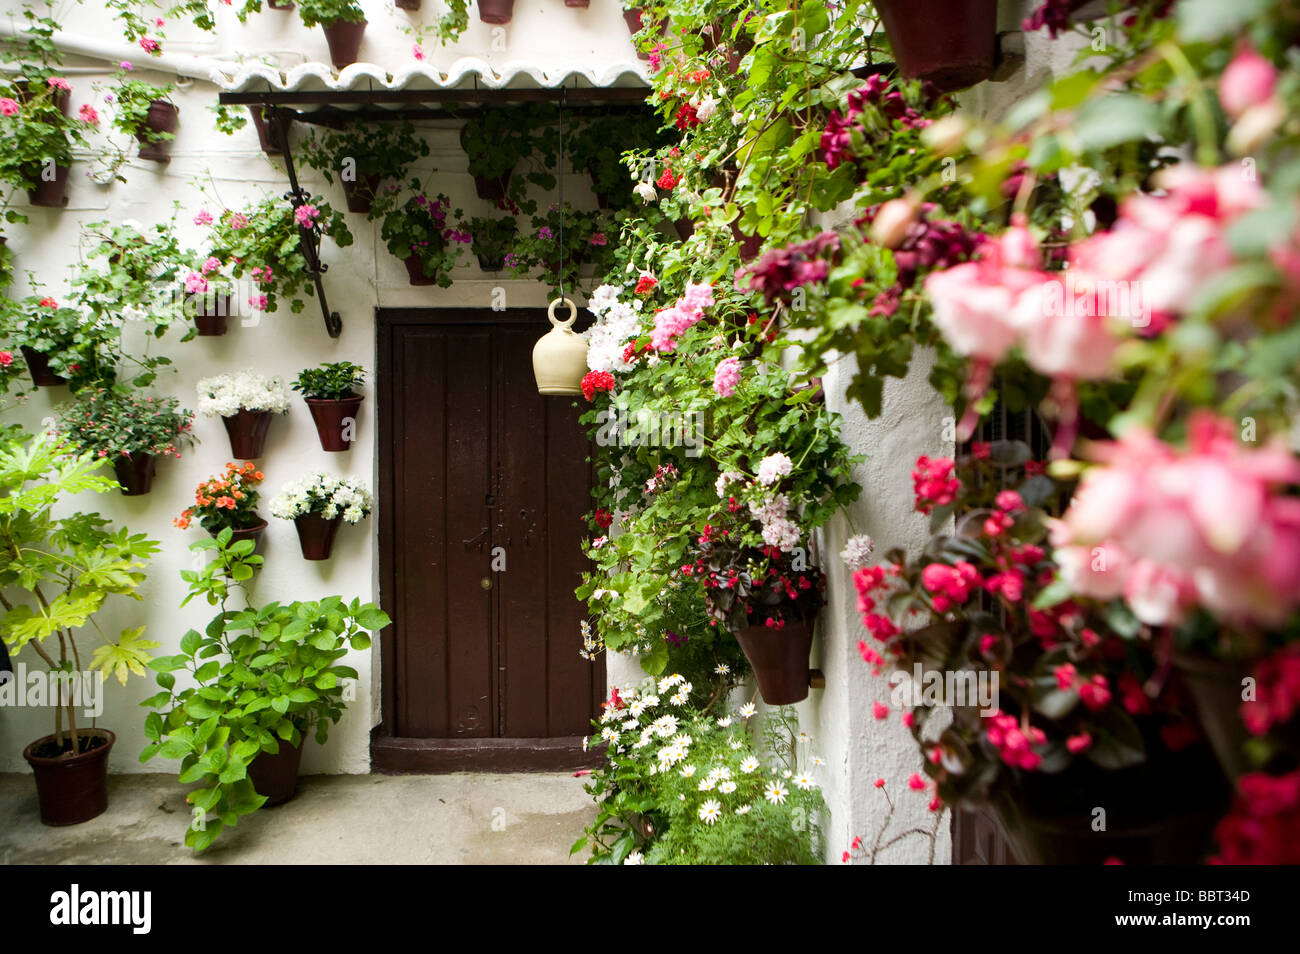 May, Patios, in, Cordoba, bougainvillea, Patio, contest, Andalucian, Patio, Andalusia, Spain, Mediterranean, flowers, - Stock Image